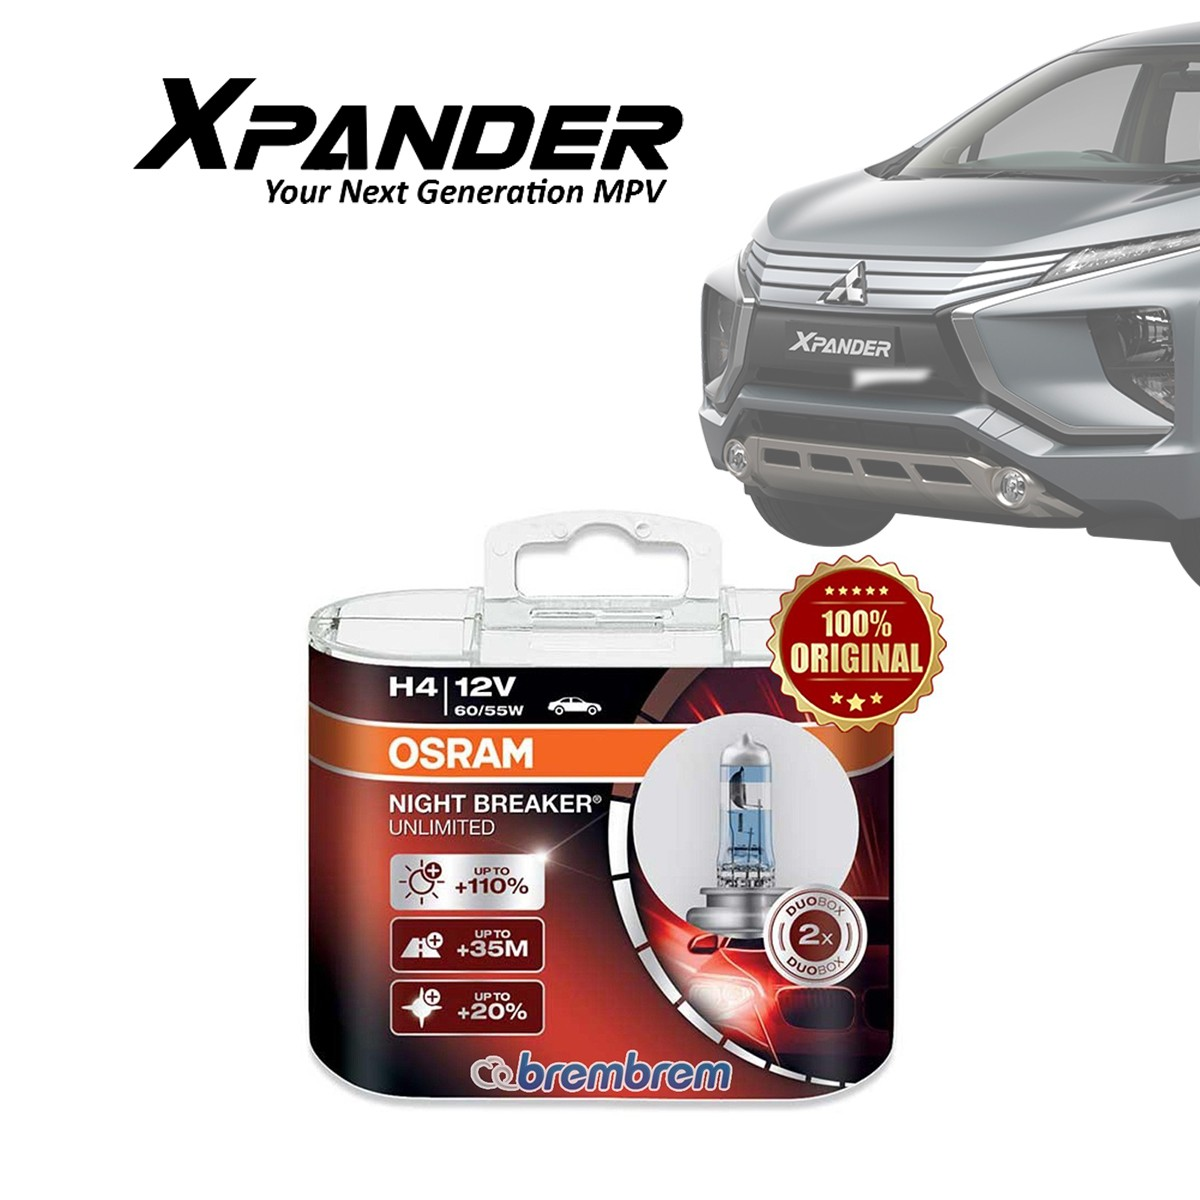 OSRAM NIGHT BREAKER UNLIMITED H4 - LAMPU HALOGEN MITSUBISHI XPANDER